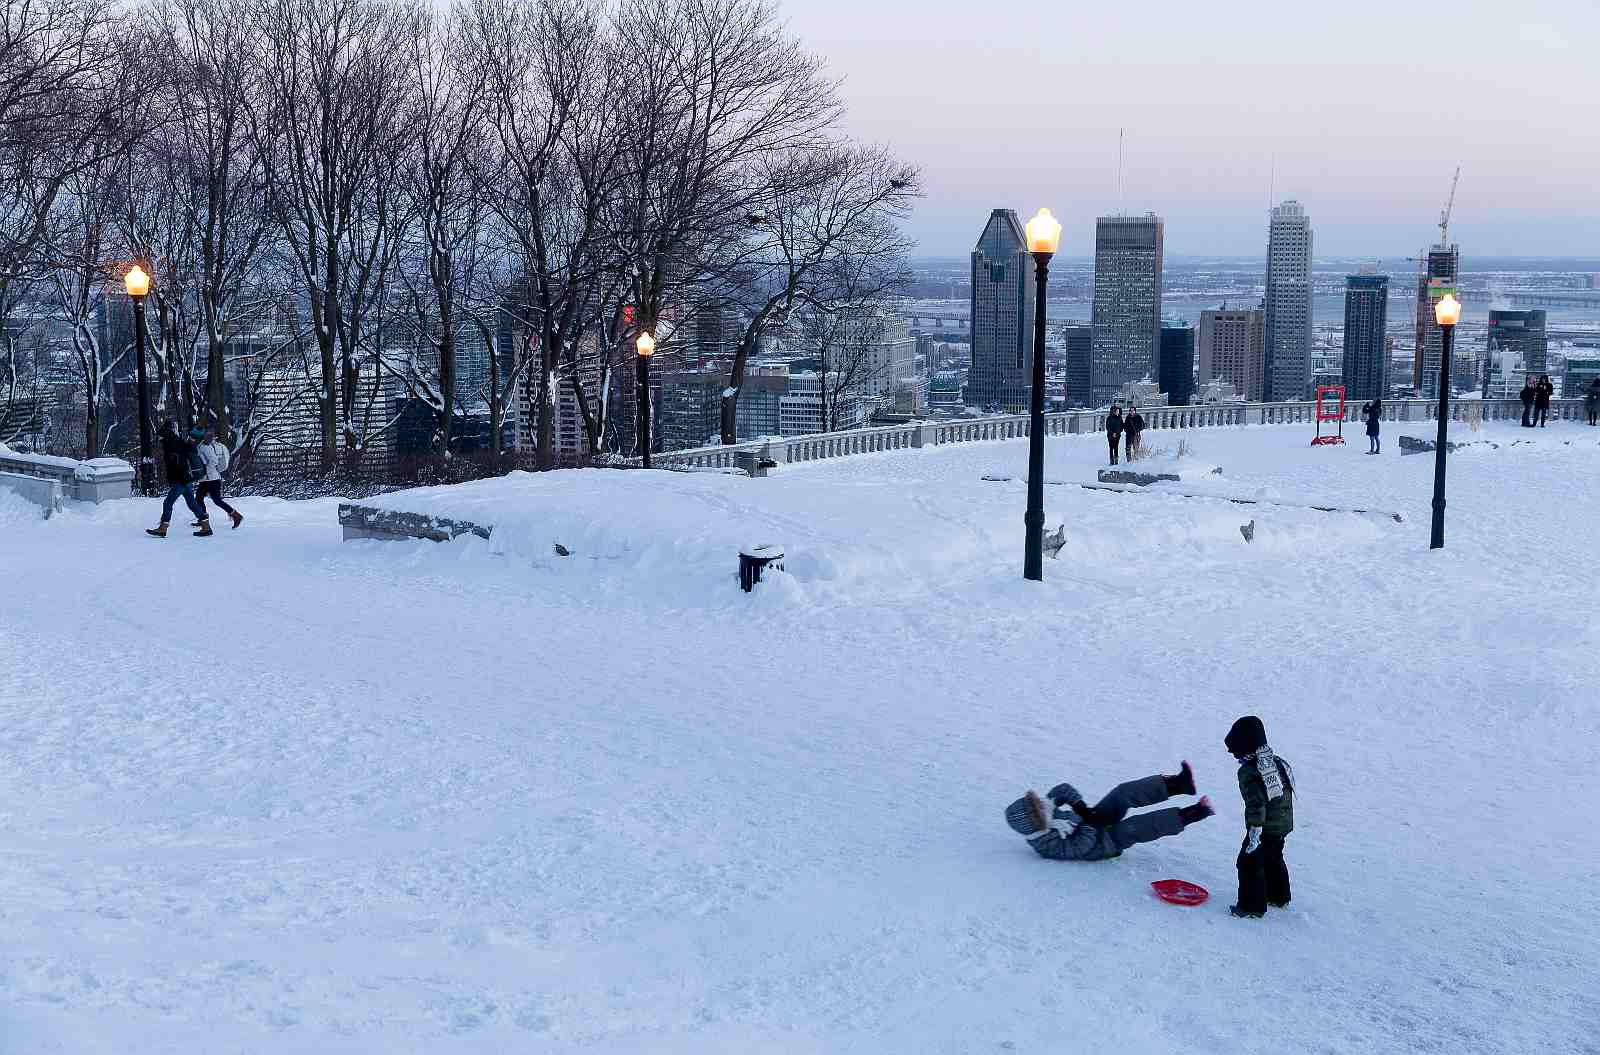 Montreal festivals in March 2017 include spring break activities for the whole family.